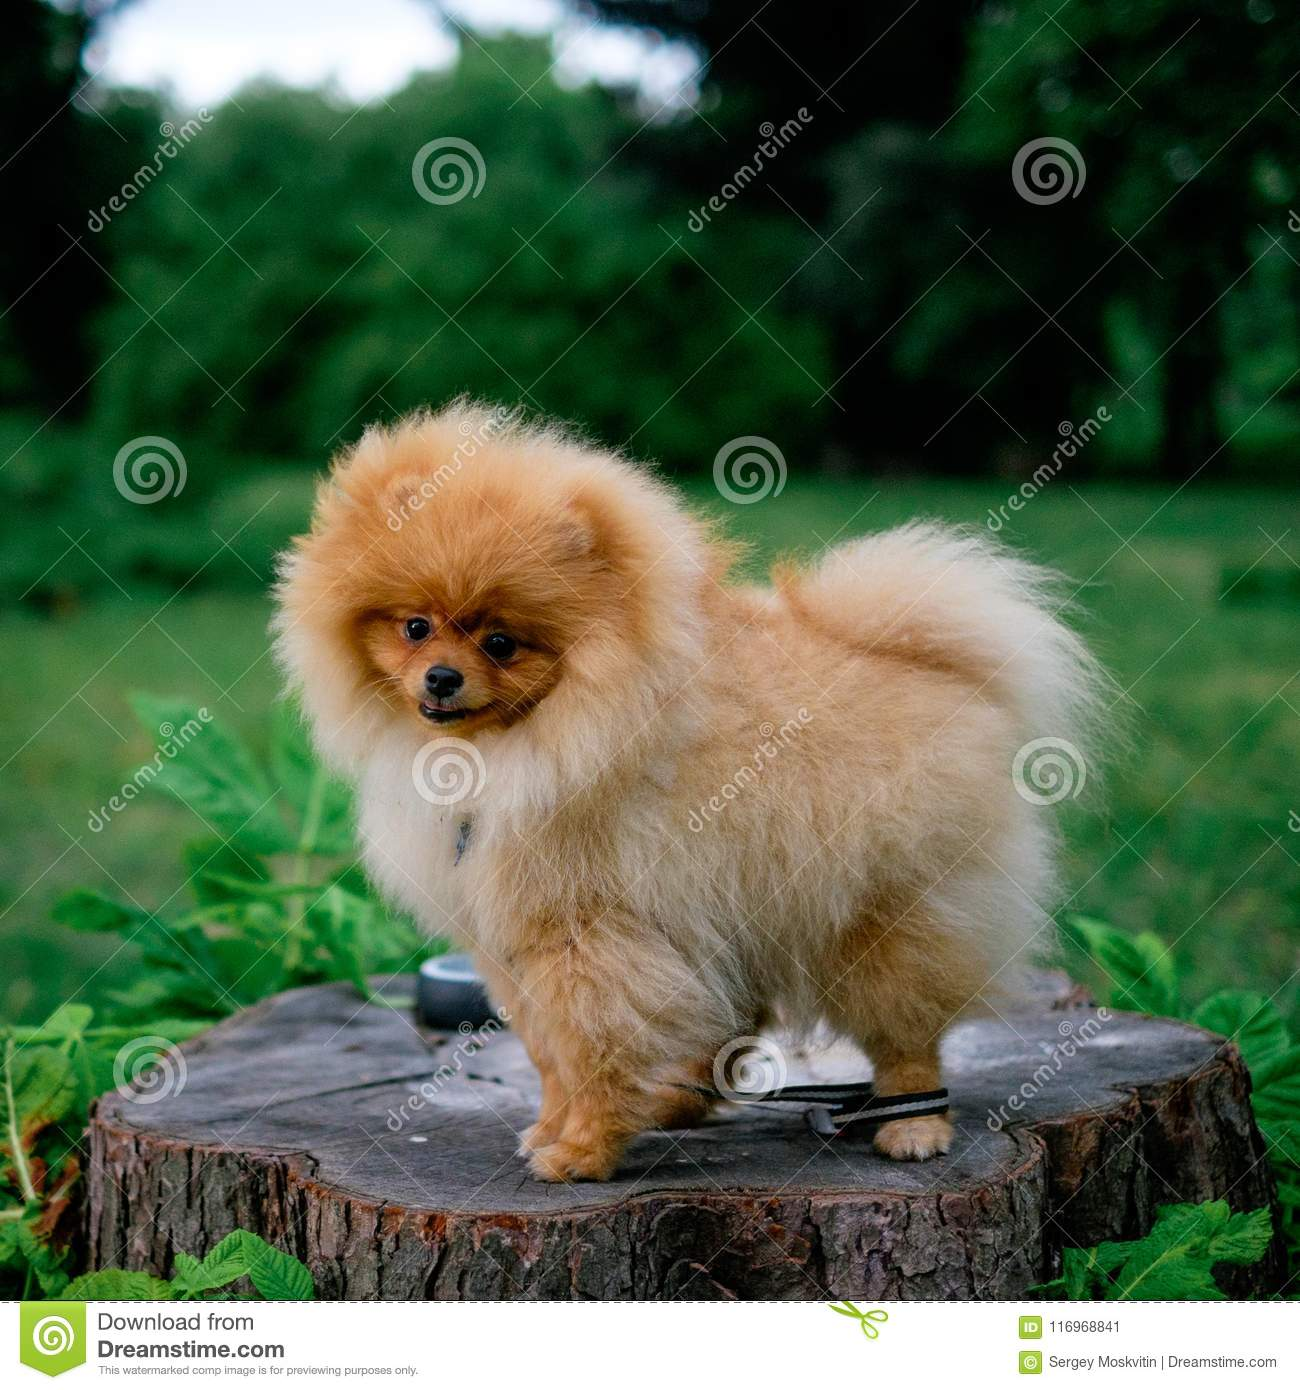 Dog pomeranian spitz smiling watch the evening sun at the park`s nature.  Adult Orange Pomeranian Spitz is sitting on green grass